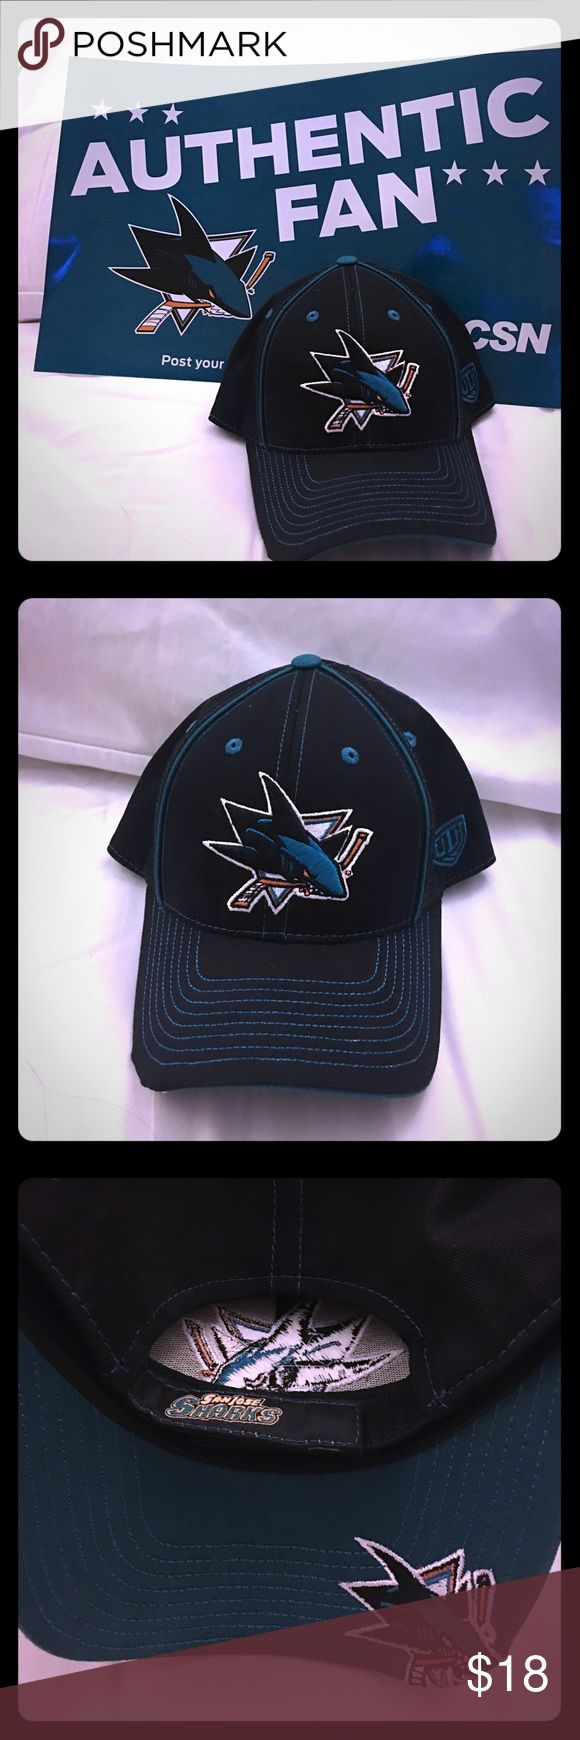 ⛸ San Jose Sharks Adjustable Cap Get ready for another exhilarating San Jose Sharks Playoffs run with this NHL licensed adjustable cap. Black with teal stitching and unique Shark logo on under brim. Accessories Hats